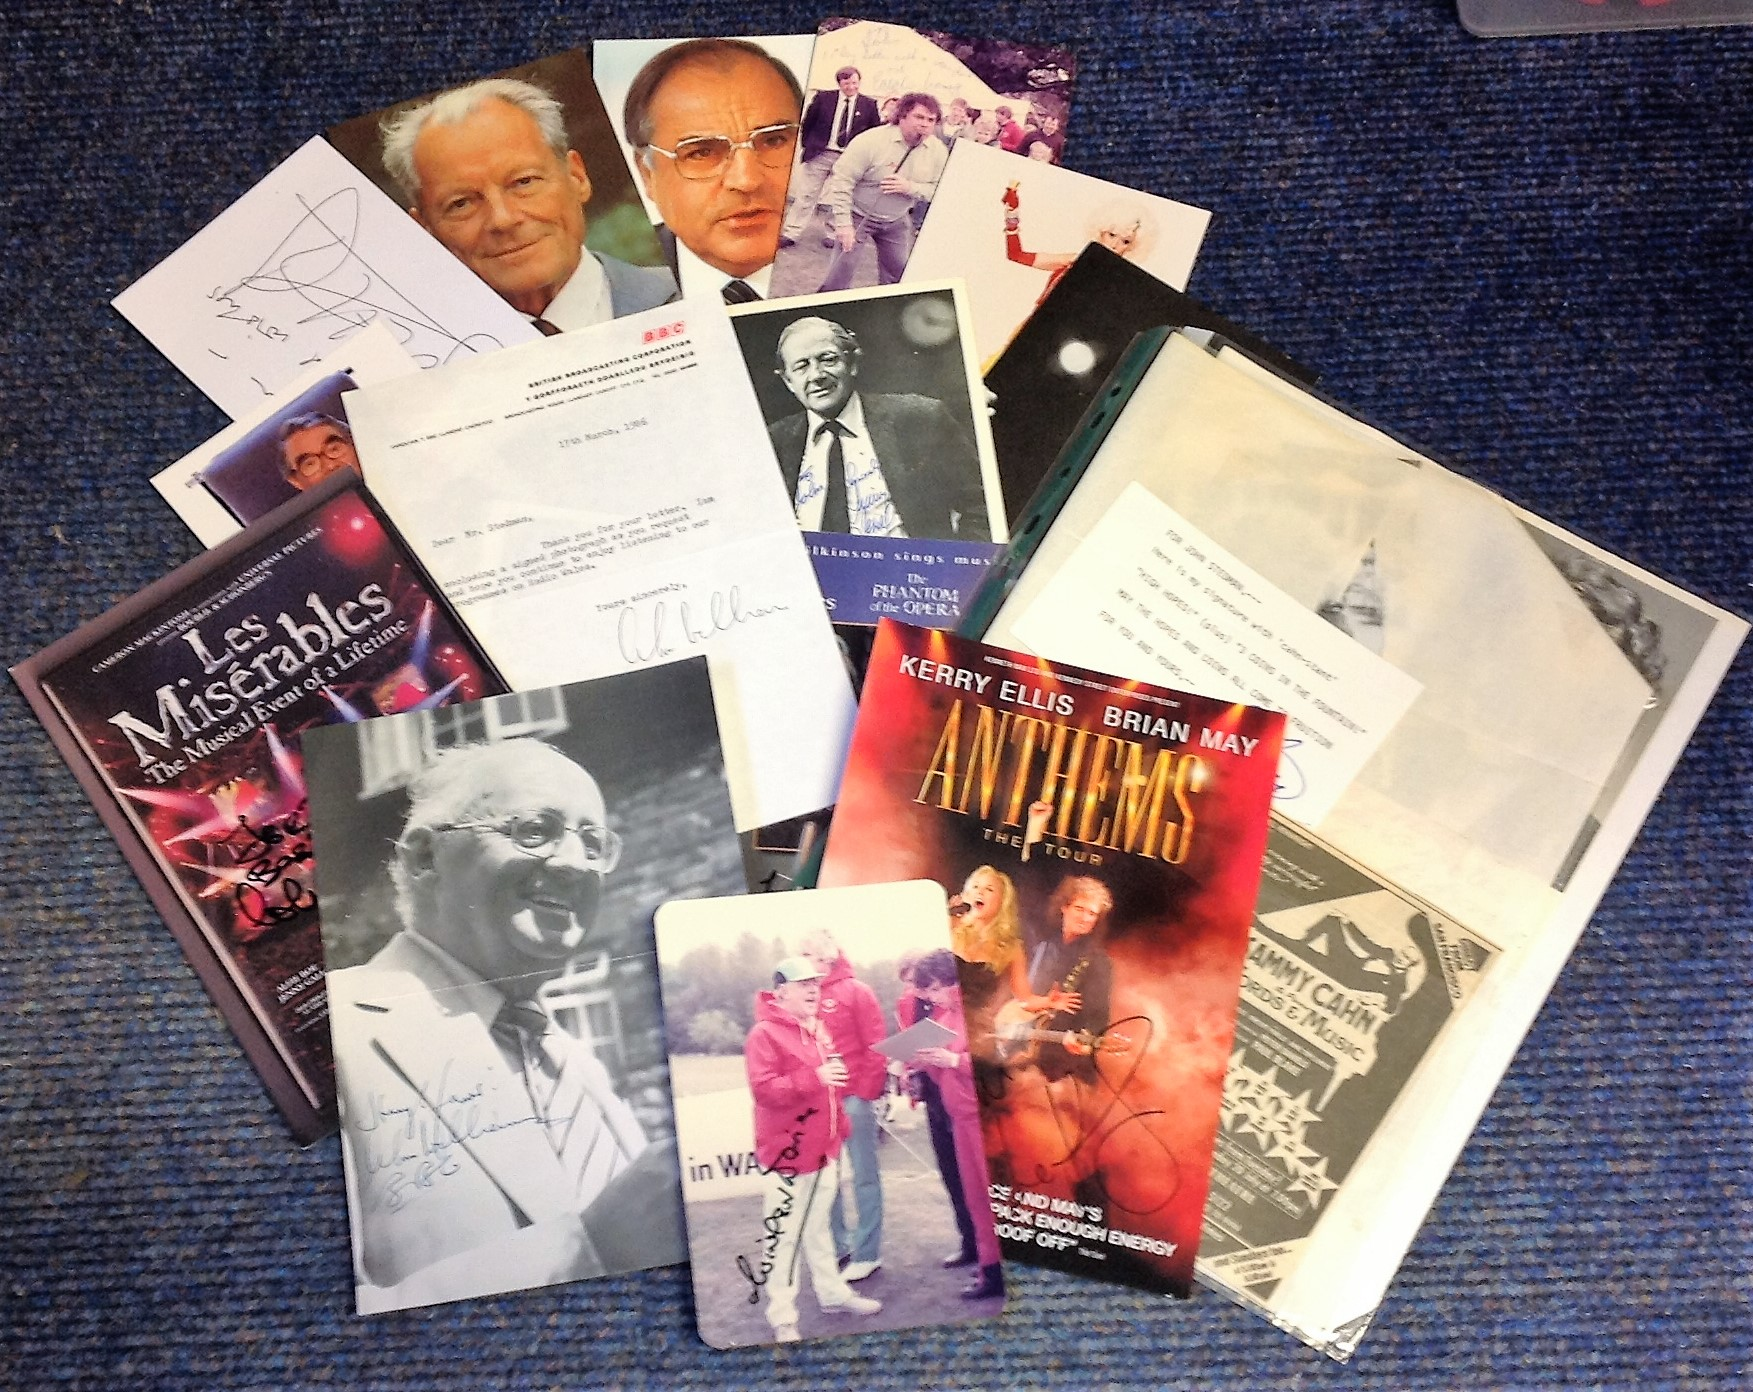 Lot 17 - Assorted TV/Music signed collection. 19 items. Assorted photos, flyers, signature pieces. Some of